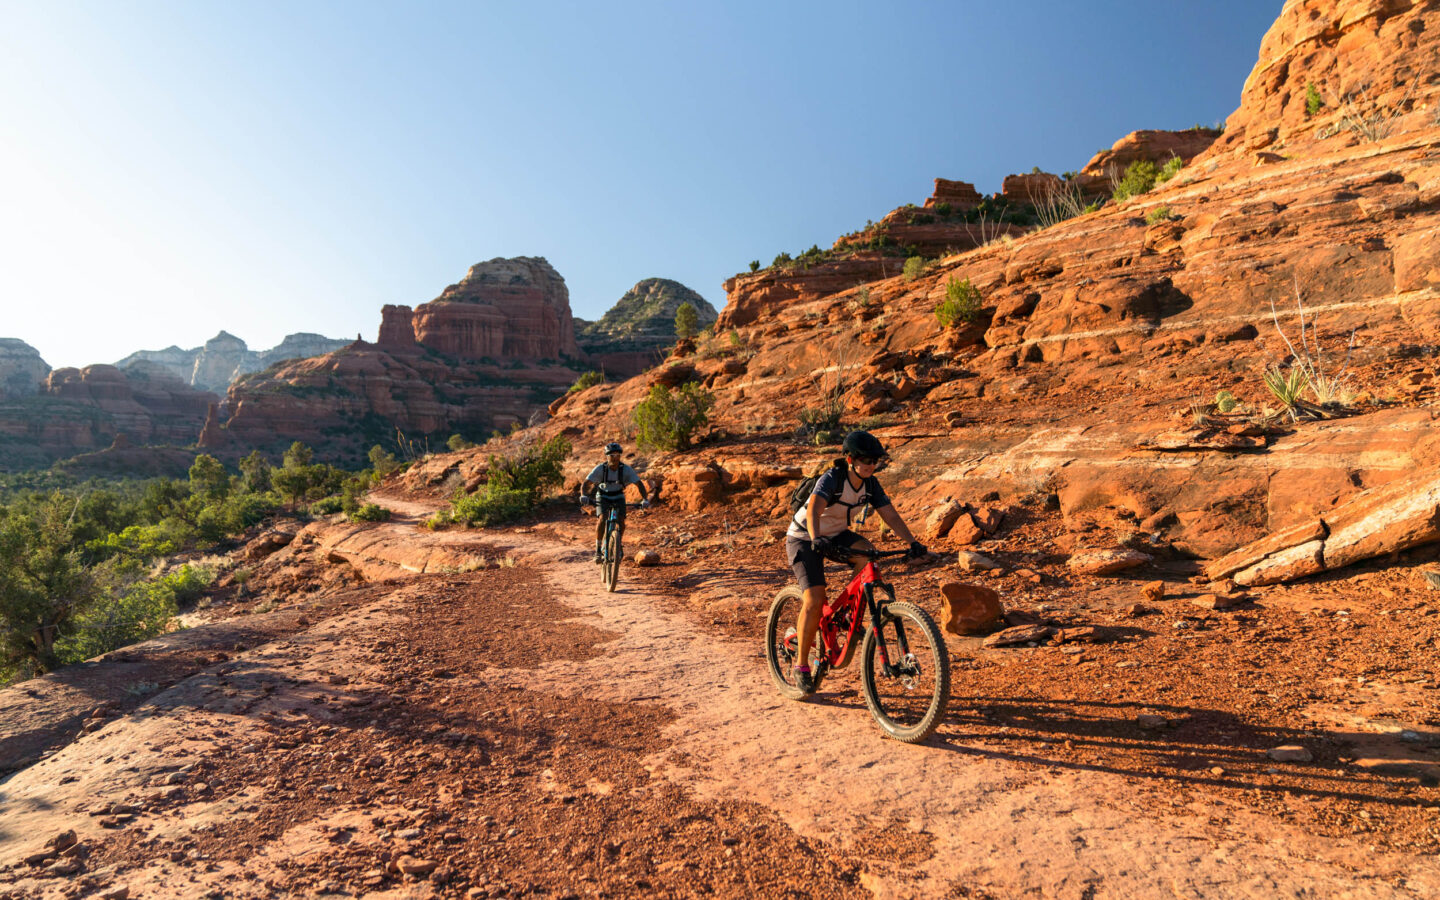 Two people mountain biking through red stone canyon